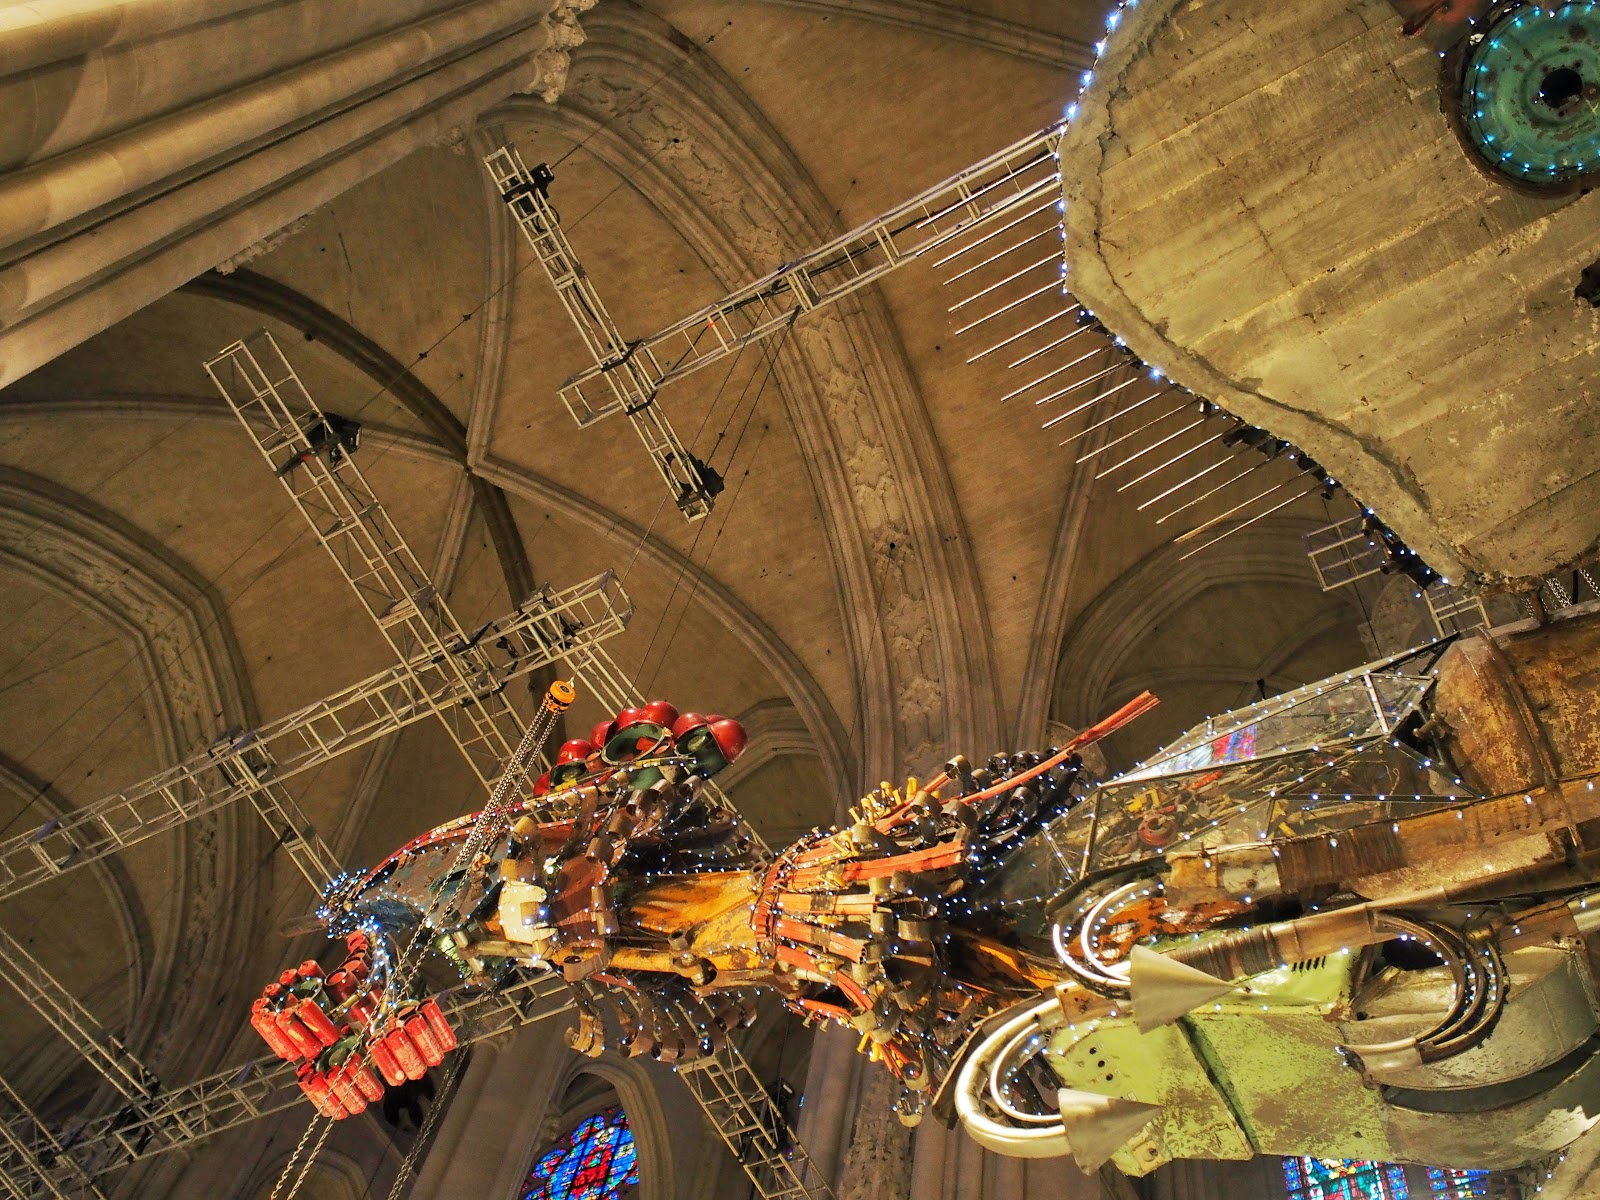 Bird on a Wire #birdonawire #phoenix #xubing #stjohnthedivinecathedral #art #nyc ©2014 Nancy Lundebjerg